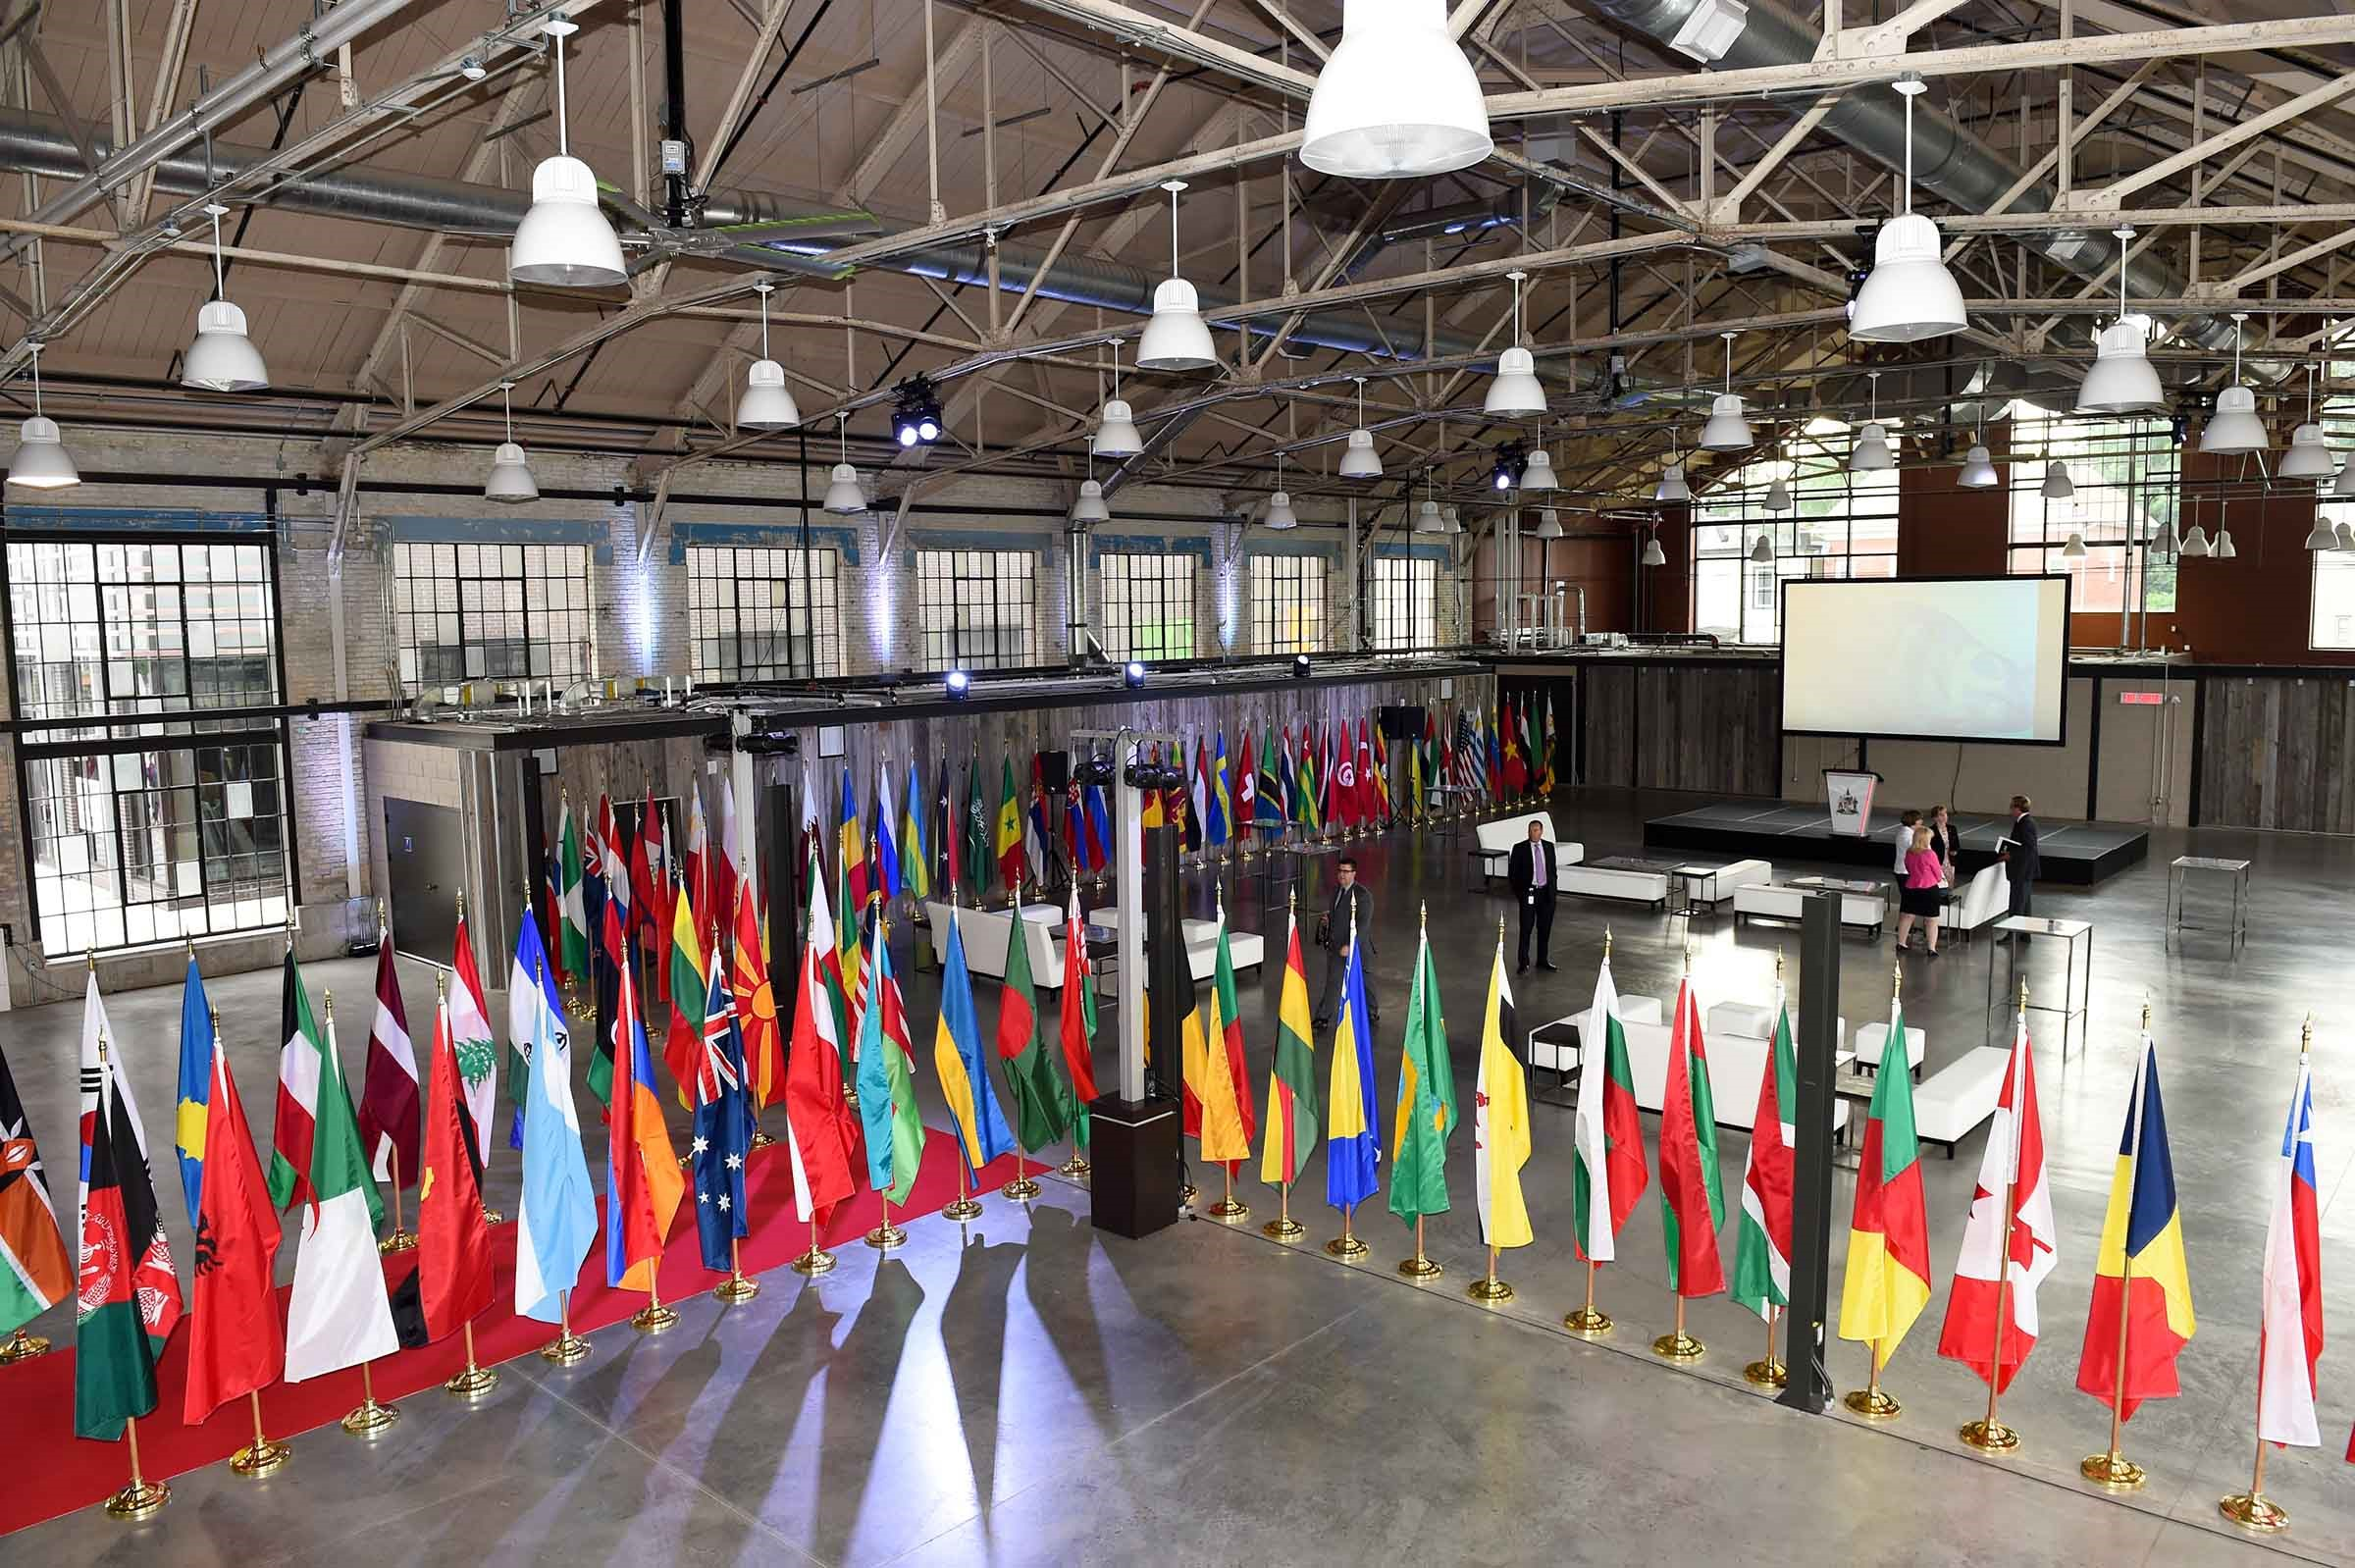 Reception hall with Diplomatic Corps flags on red carpet